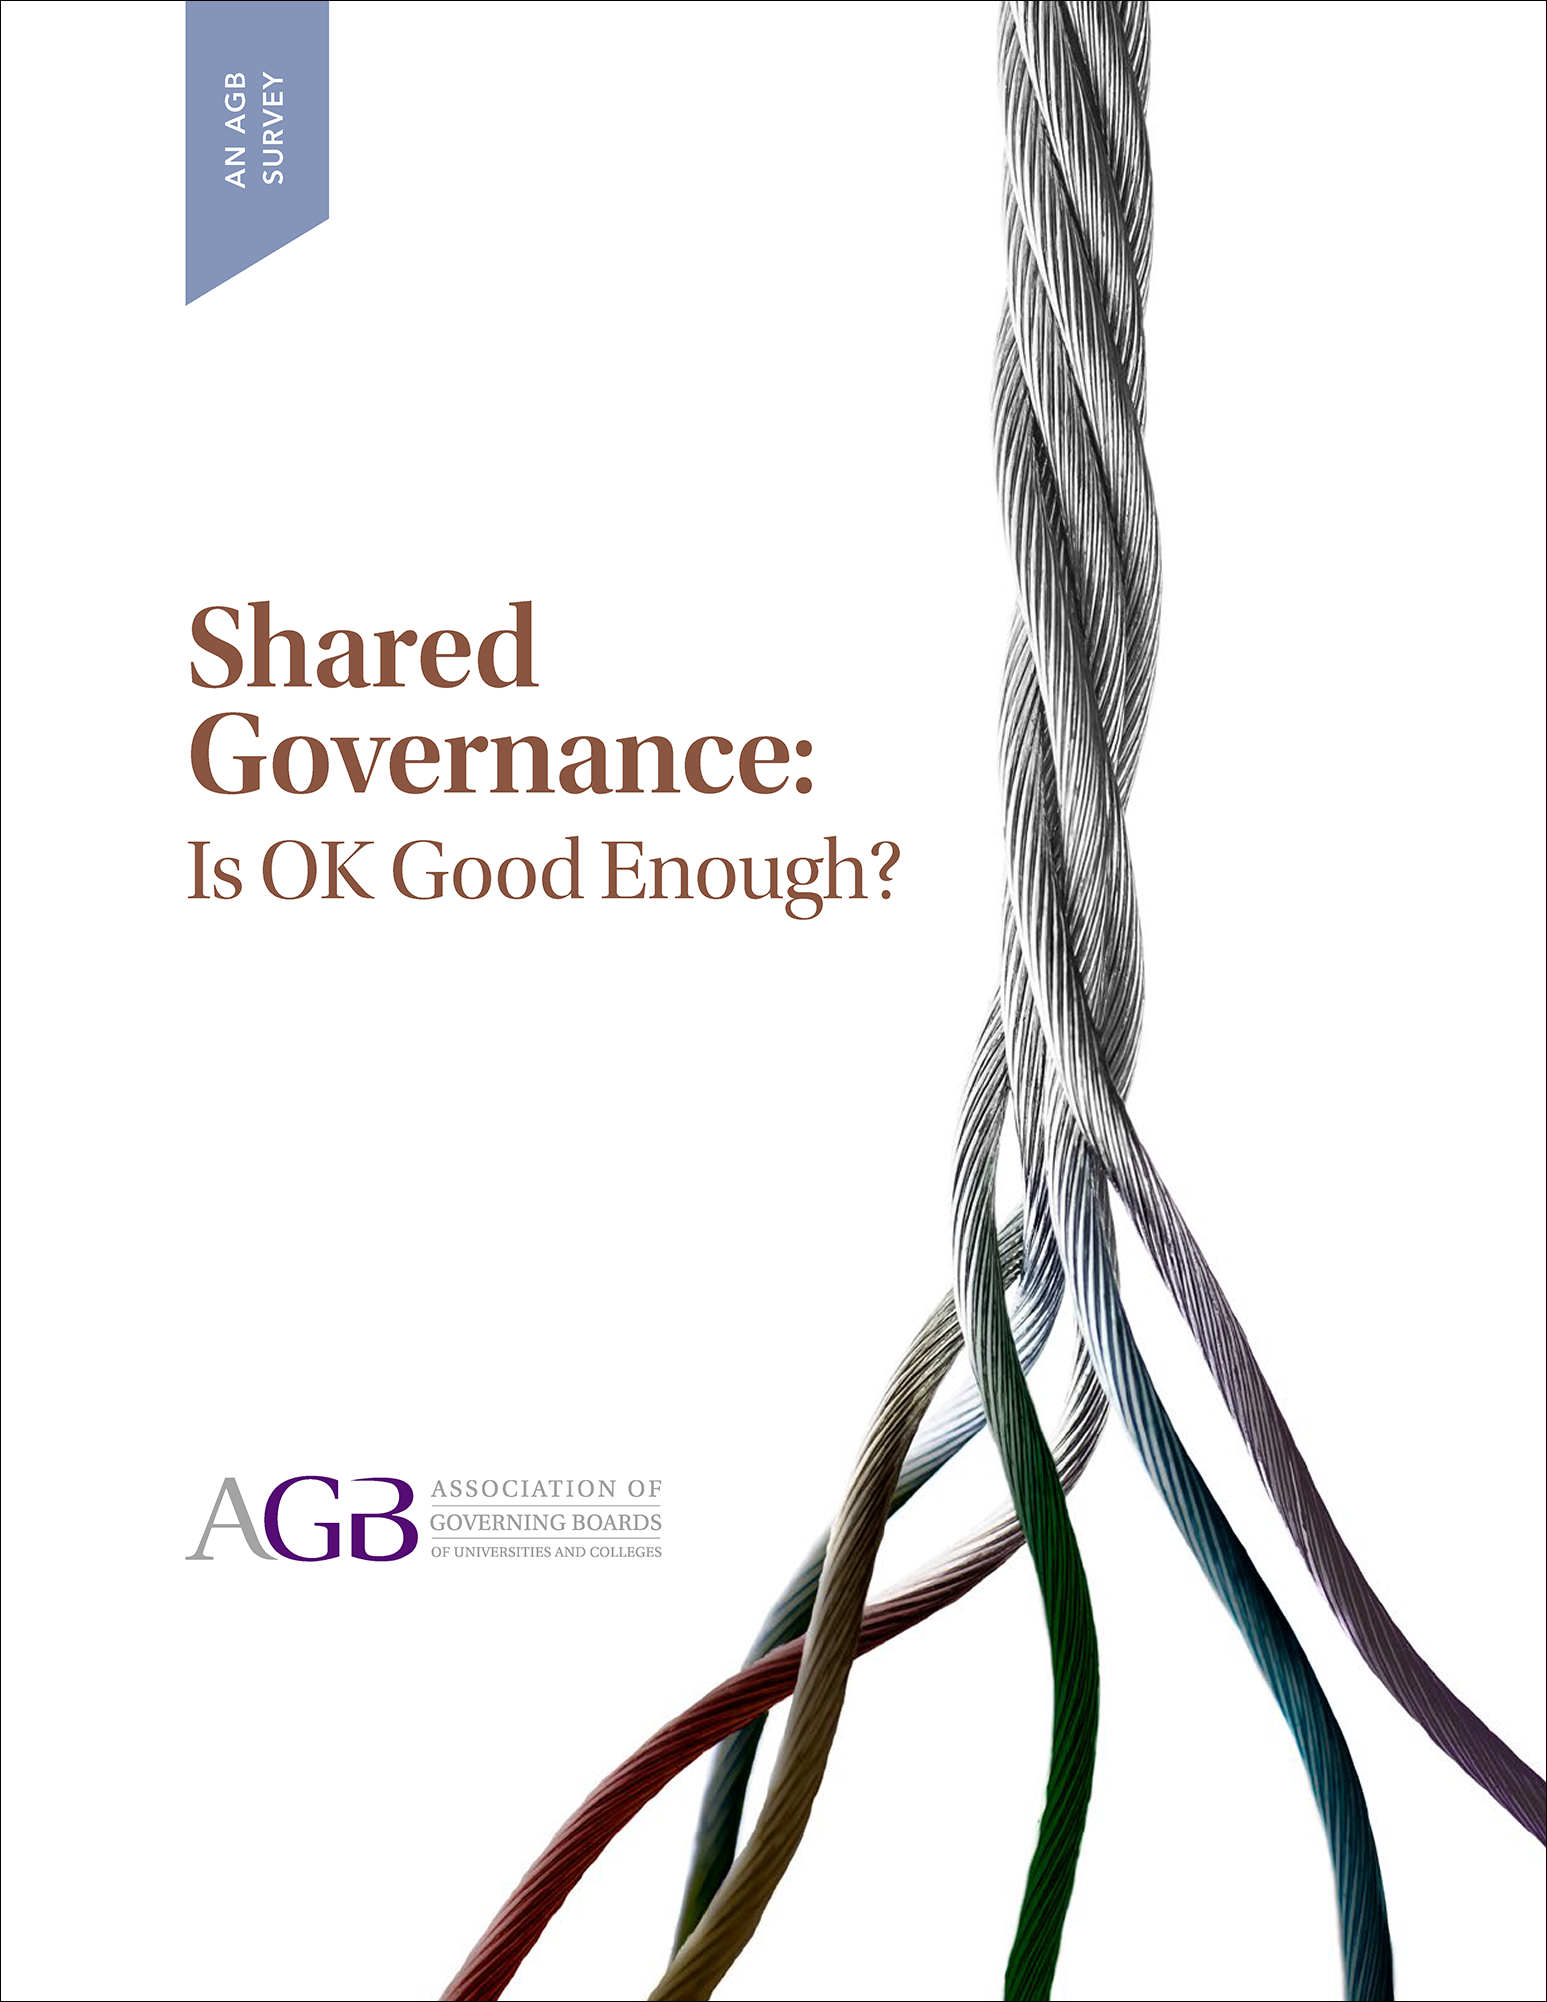 Shared Governance: Is OK Good Enough?